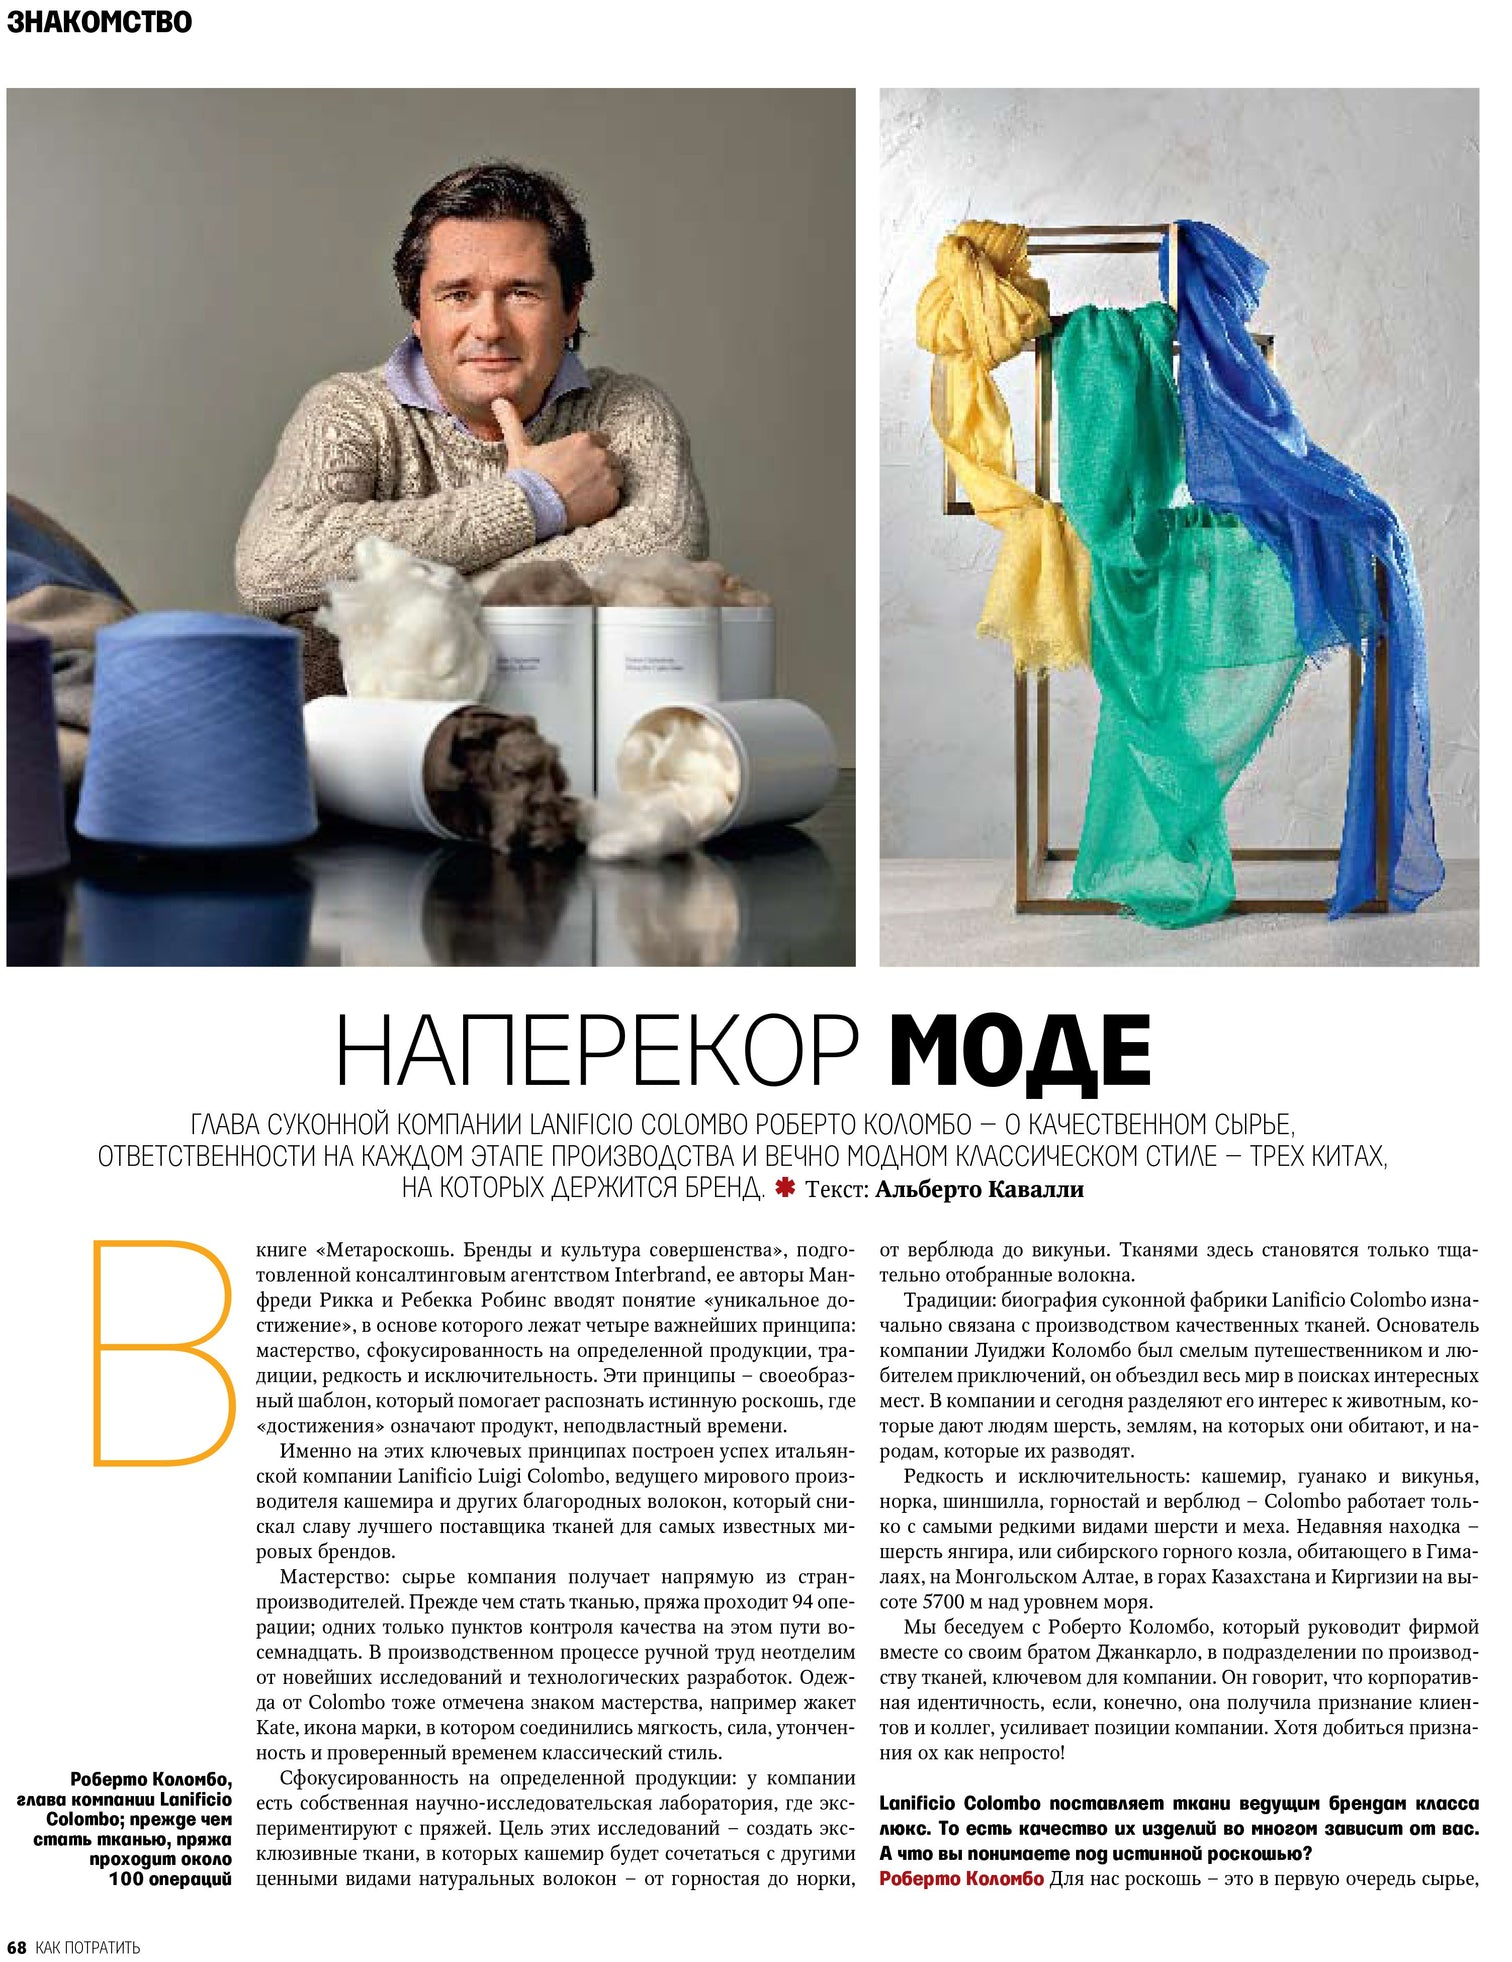 How to spend it RUSSIA - Kak Portratit